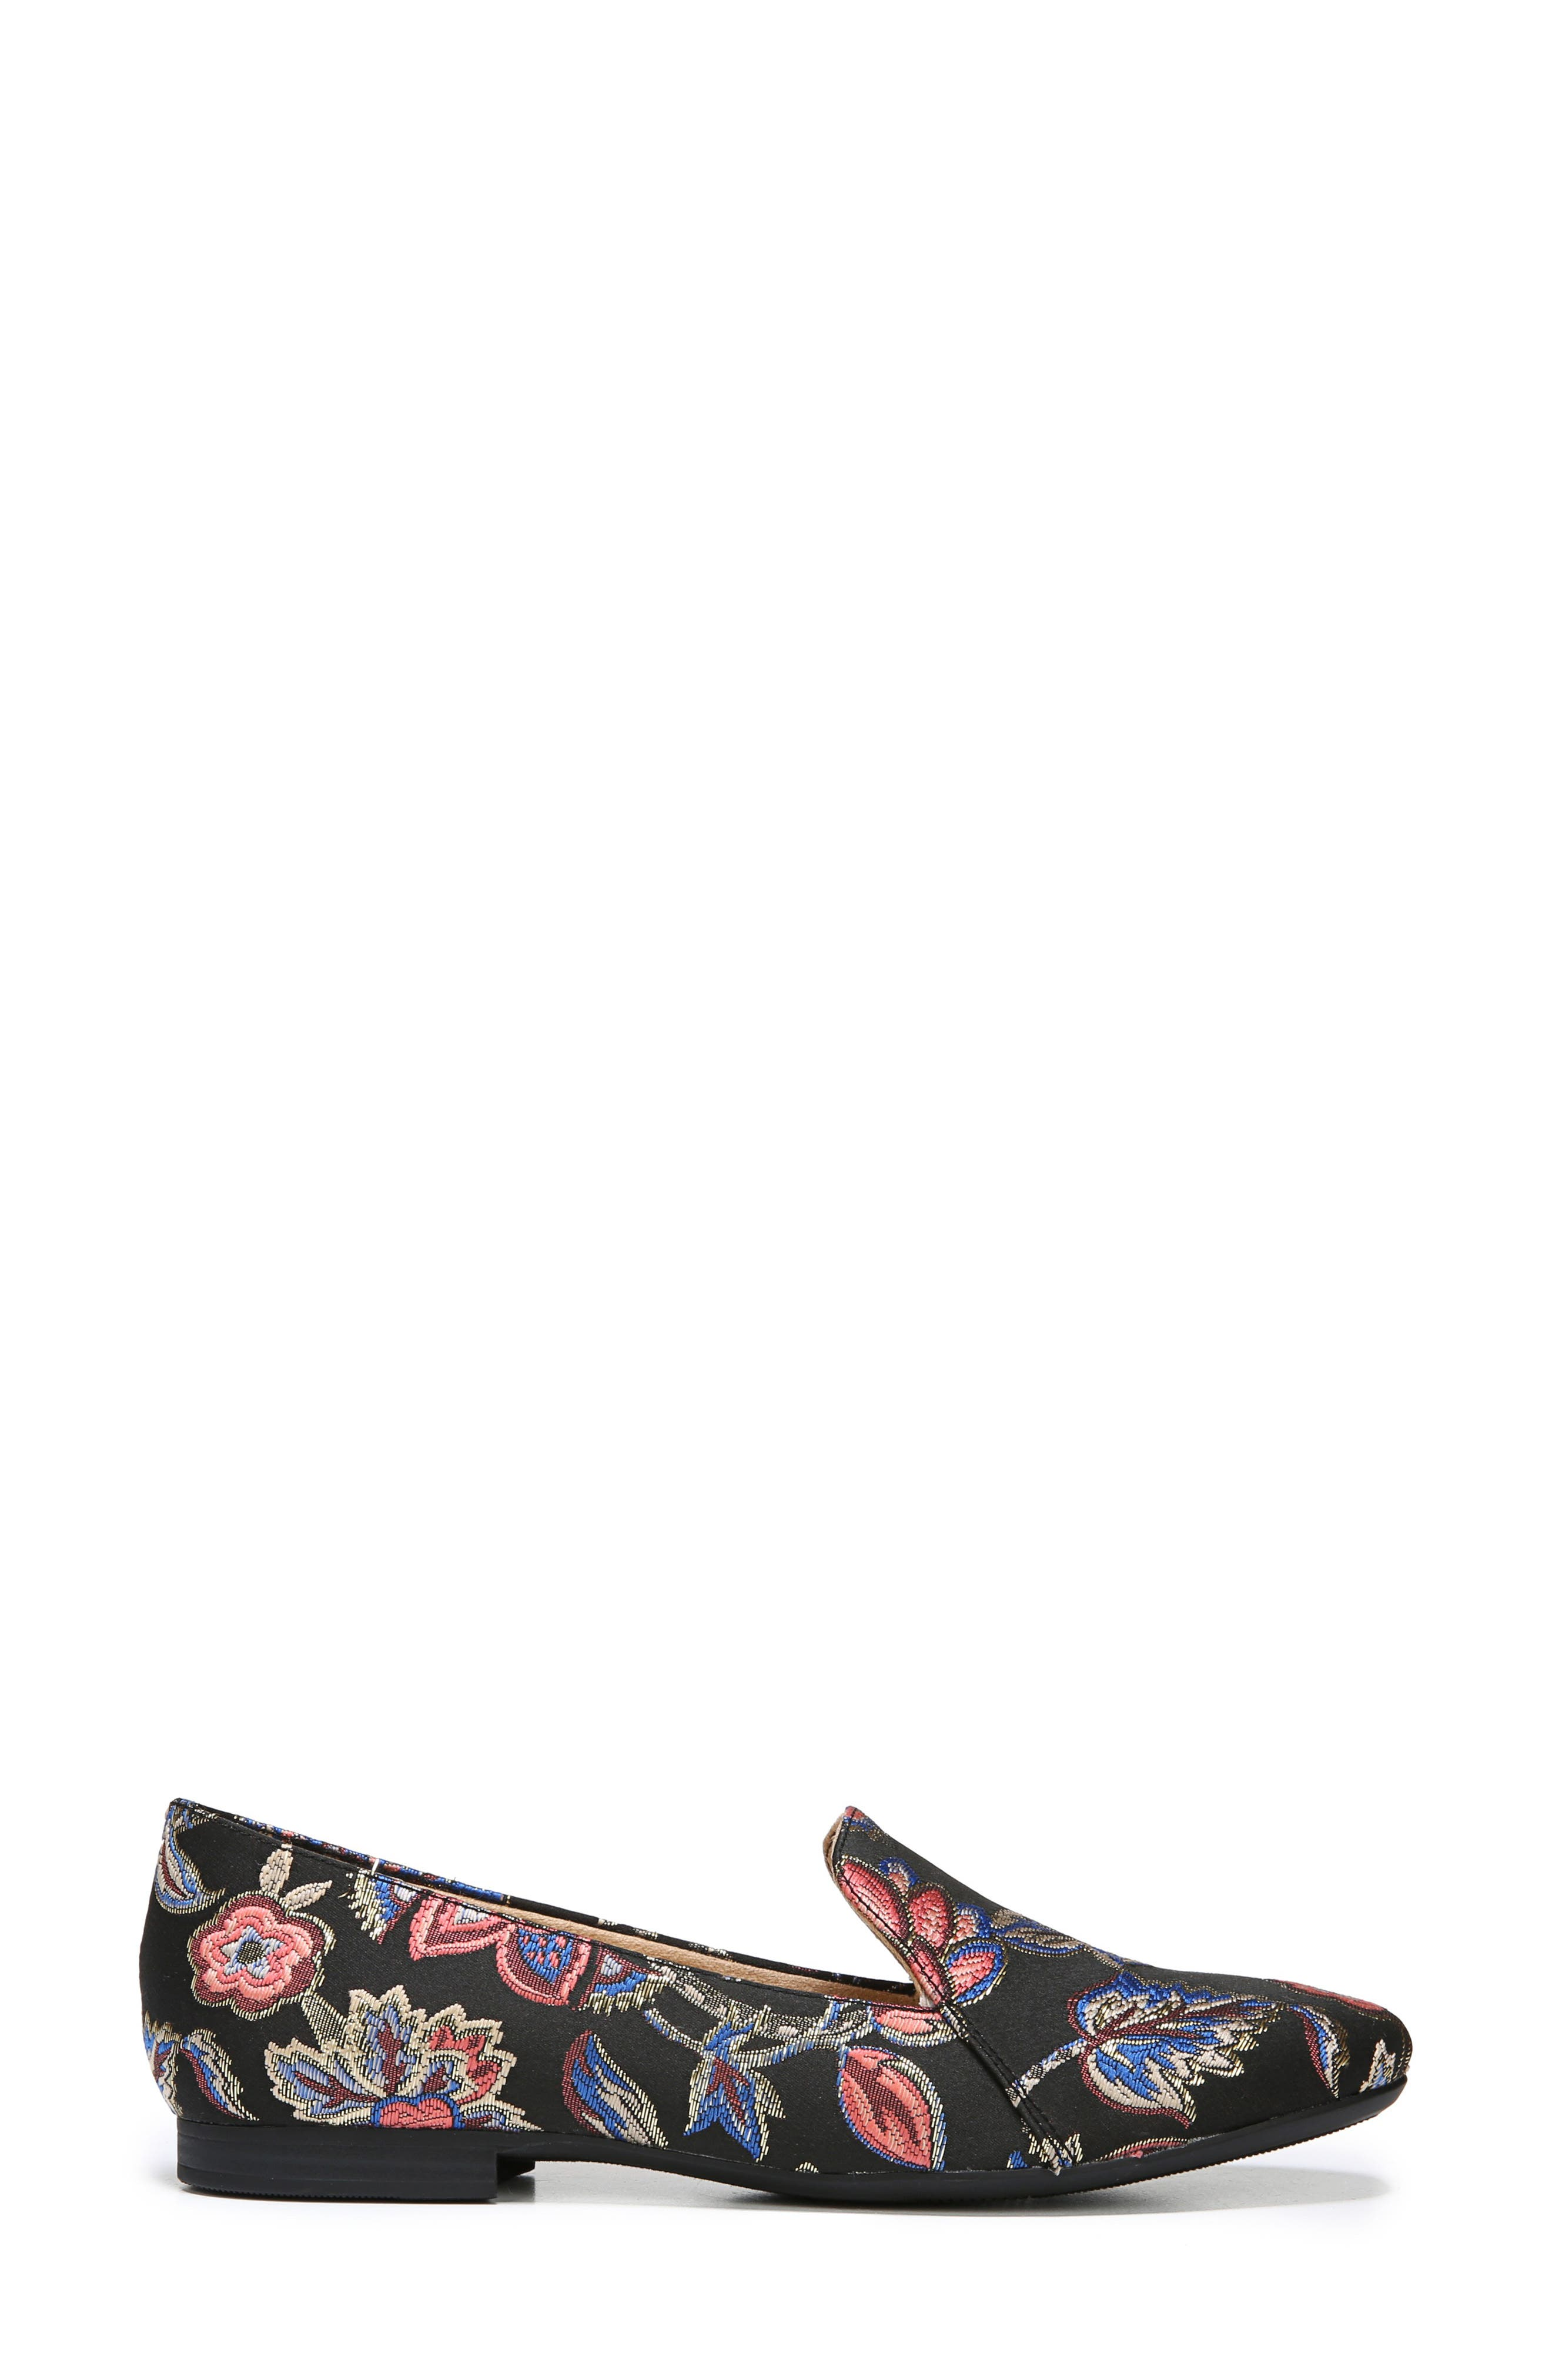 NATURALIZER, Emiline Flat Loafer, Alternate thumbnail 3, color, BROCADE